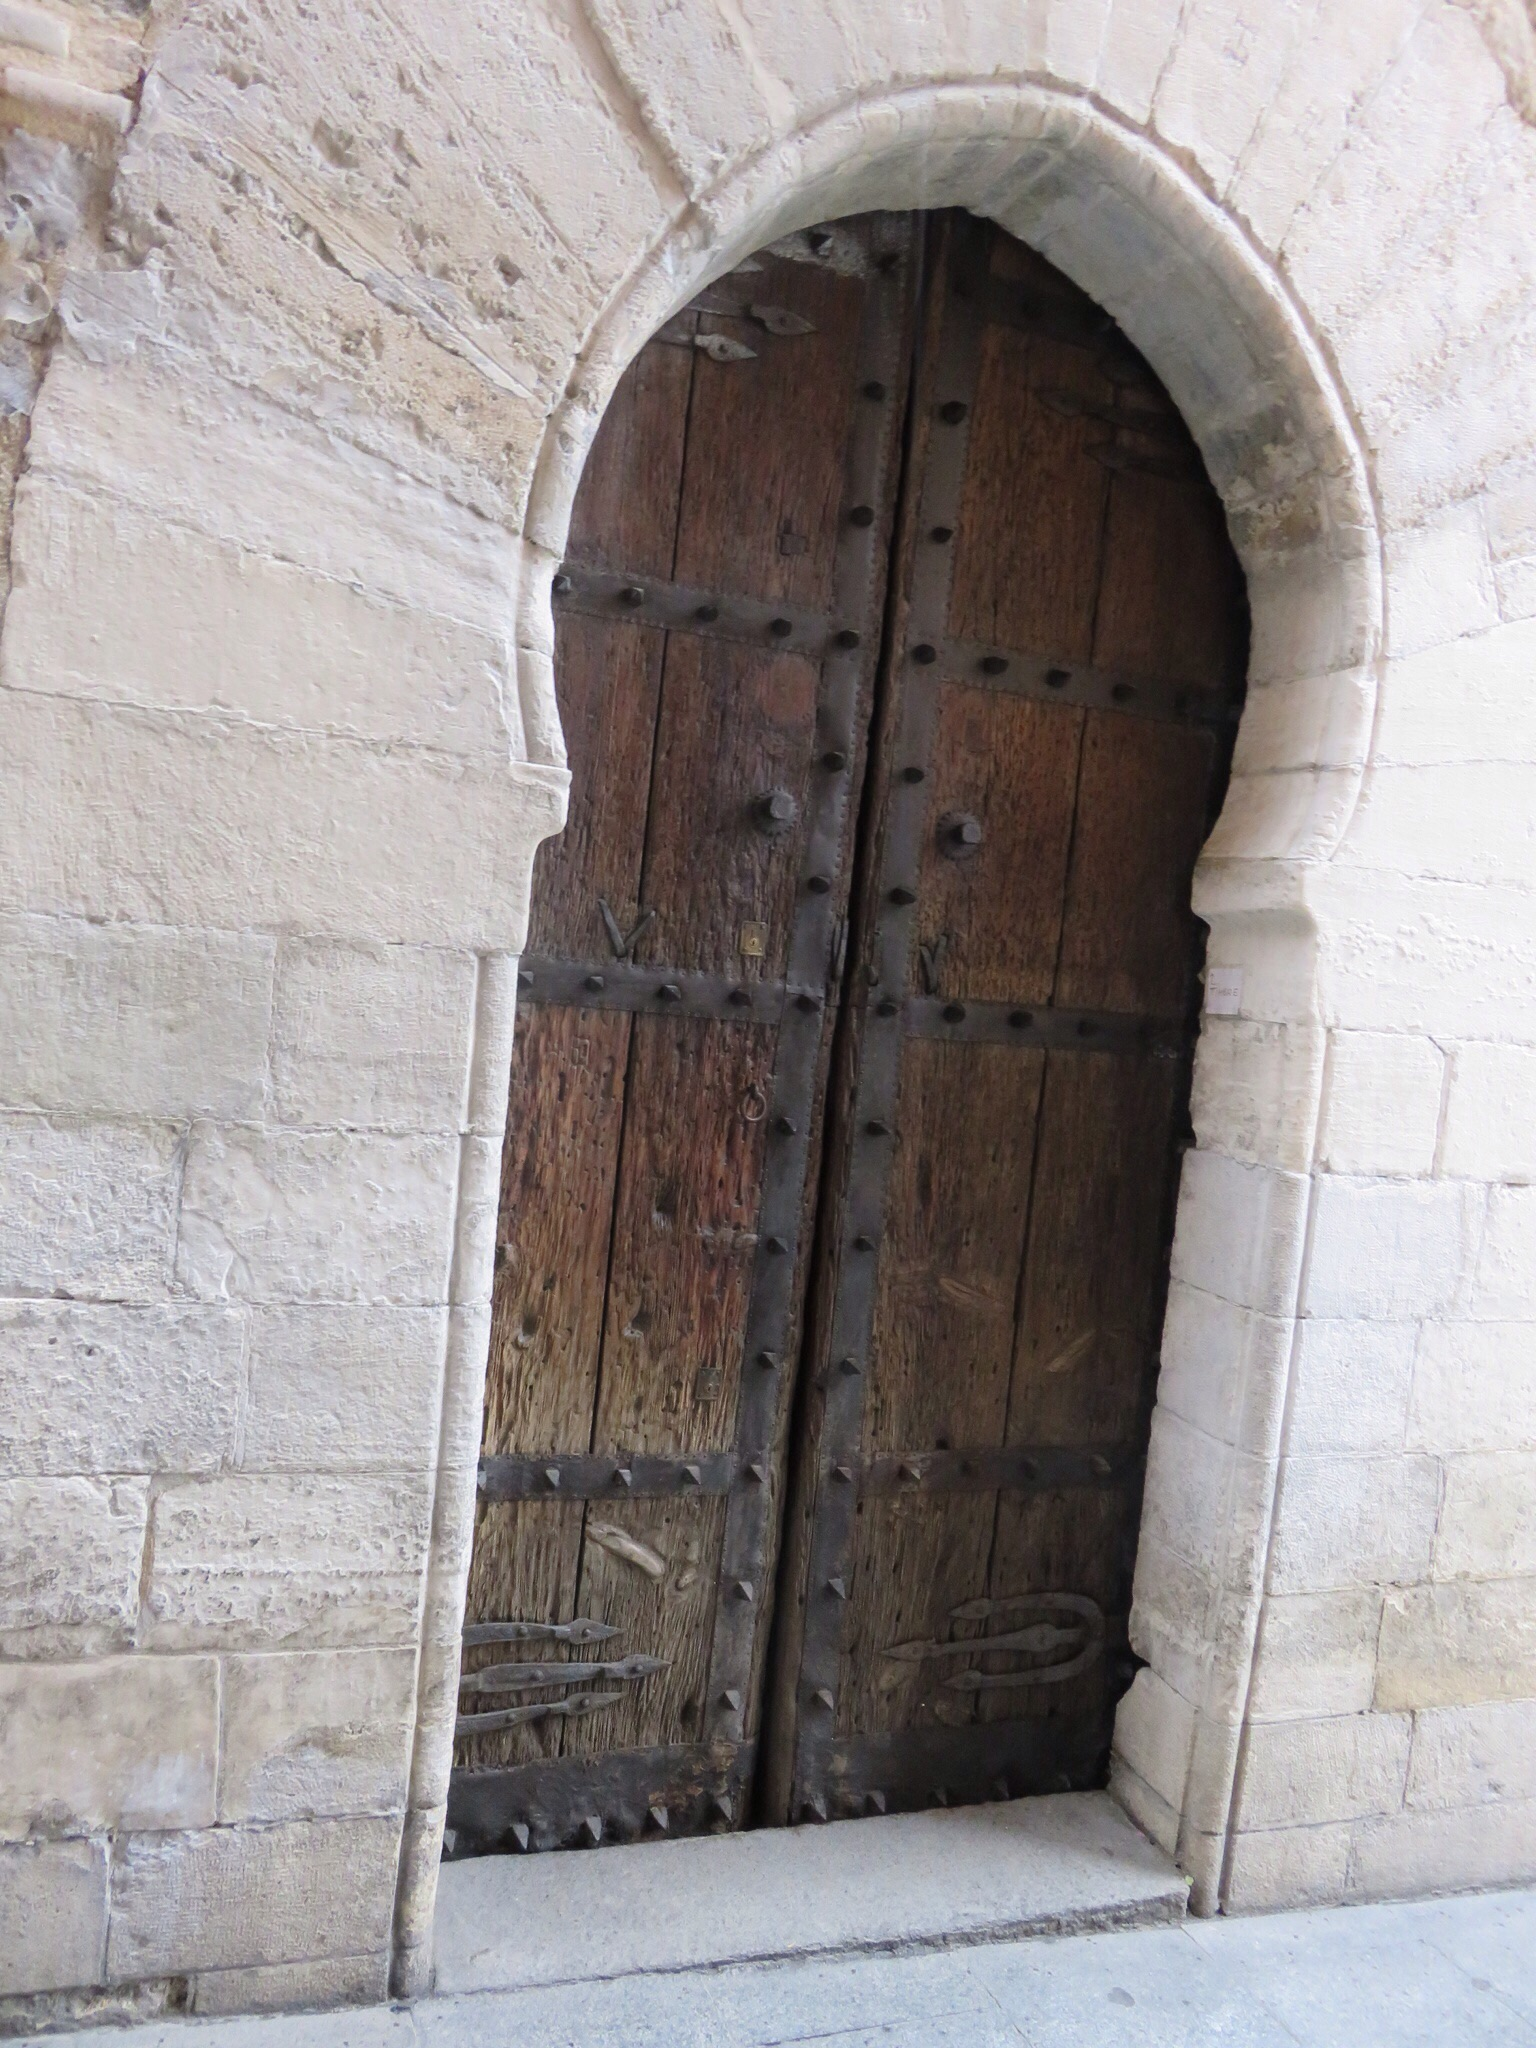 Madrid's oldest door on oldest inhabited building - 1480